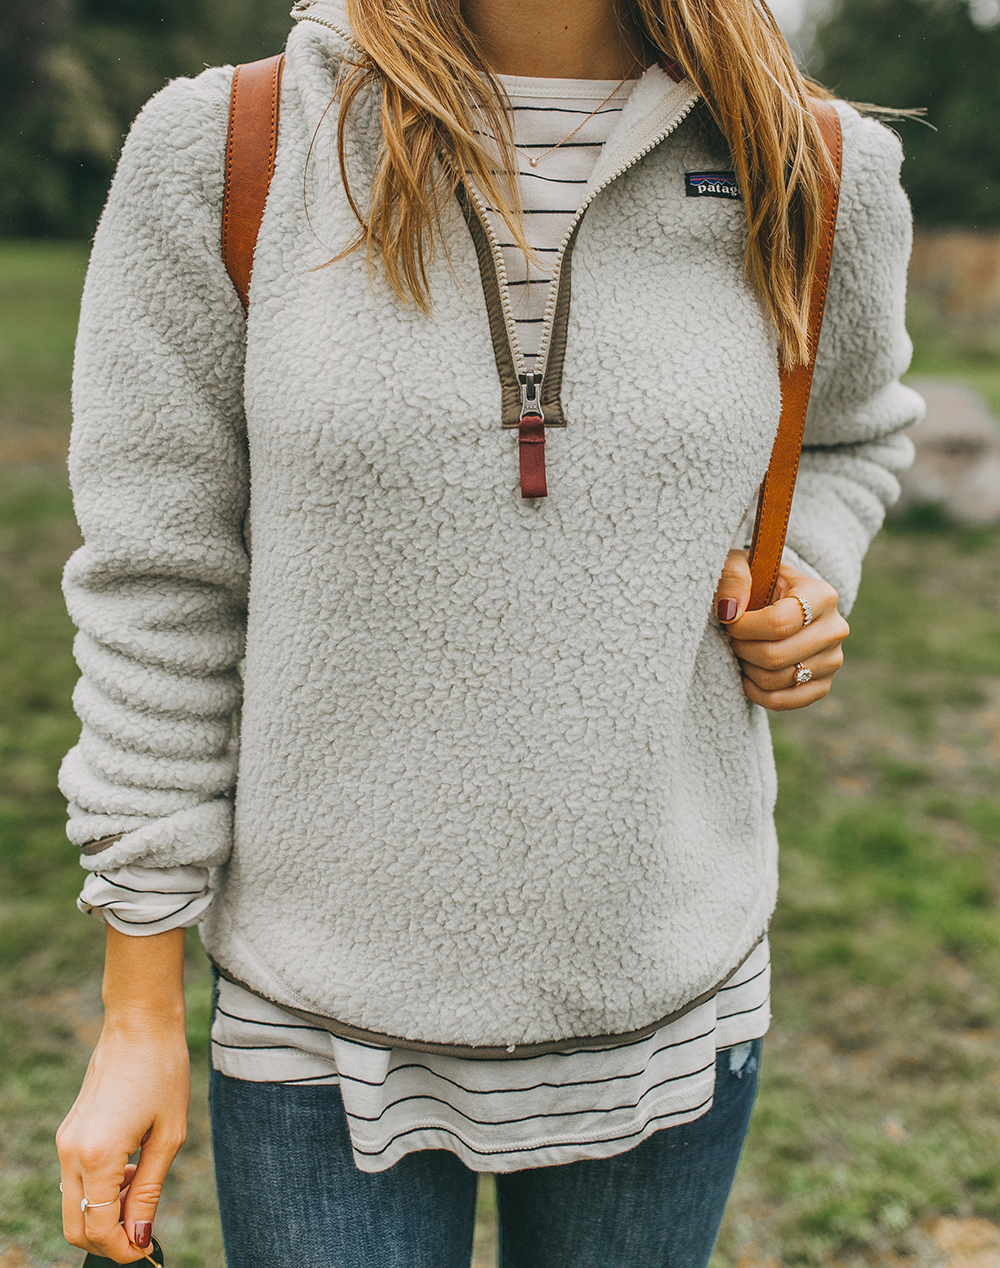 livvyland-blog-olivia-watson-austin-texas-fashion-lifestyle-travel-blogger-patagonia-retro-pile-fleece-pullover-backcountry-outfit-blarney-castle-cork-ireland-3